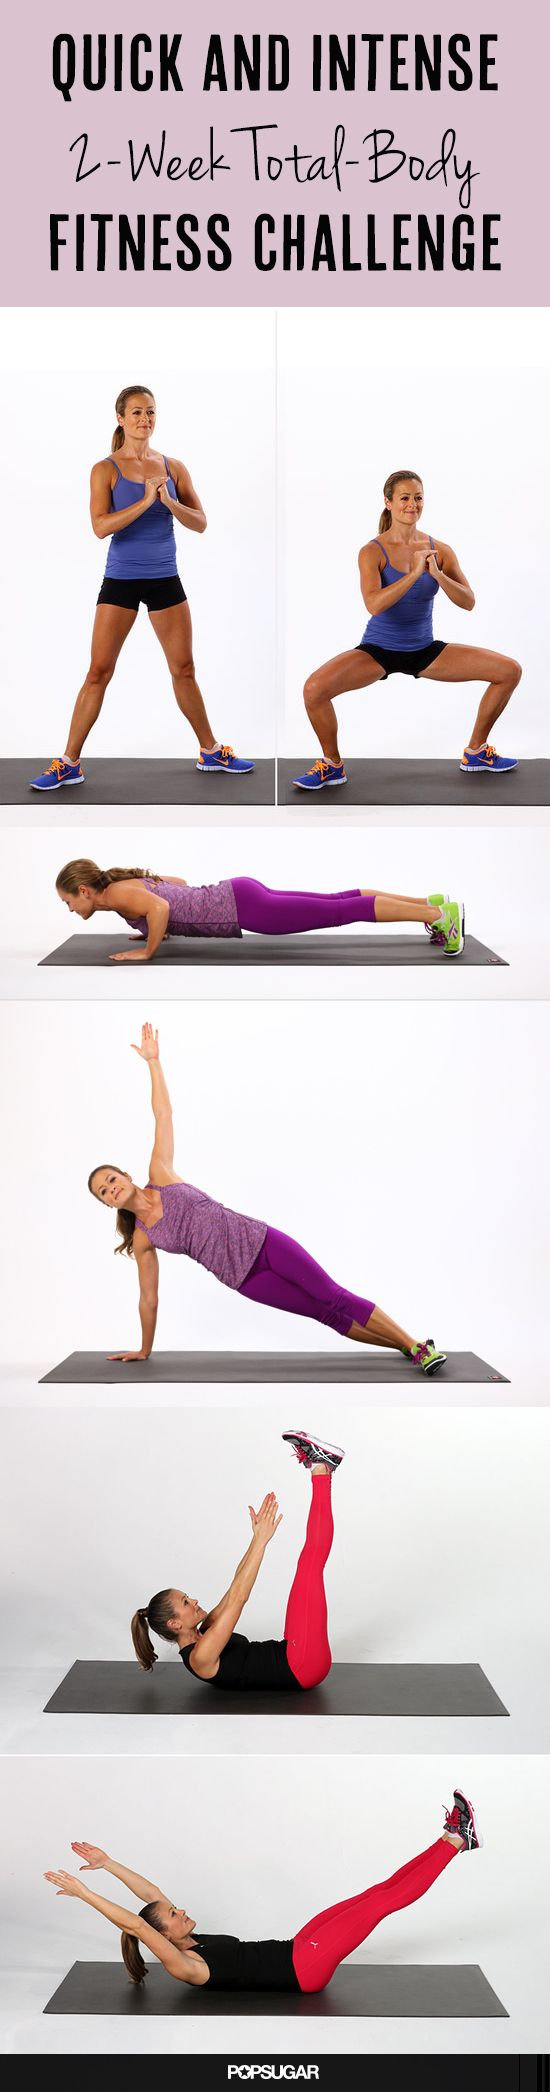 Quick and Intense 2-Week Total-Body Challenge